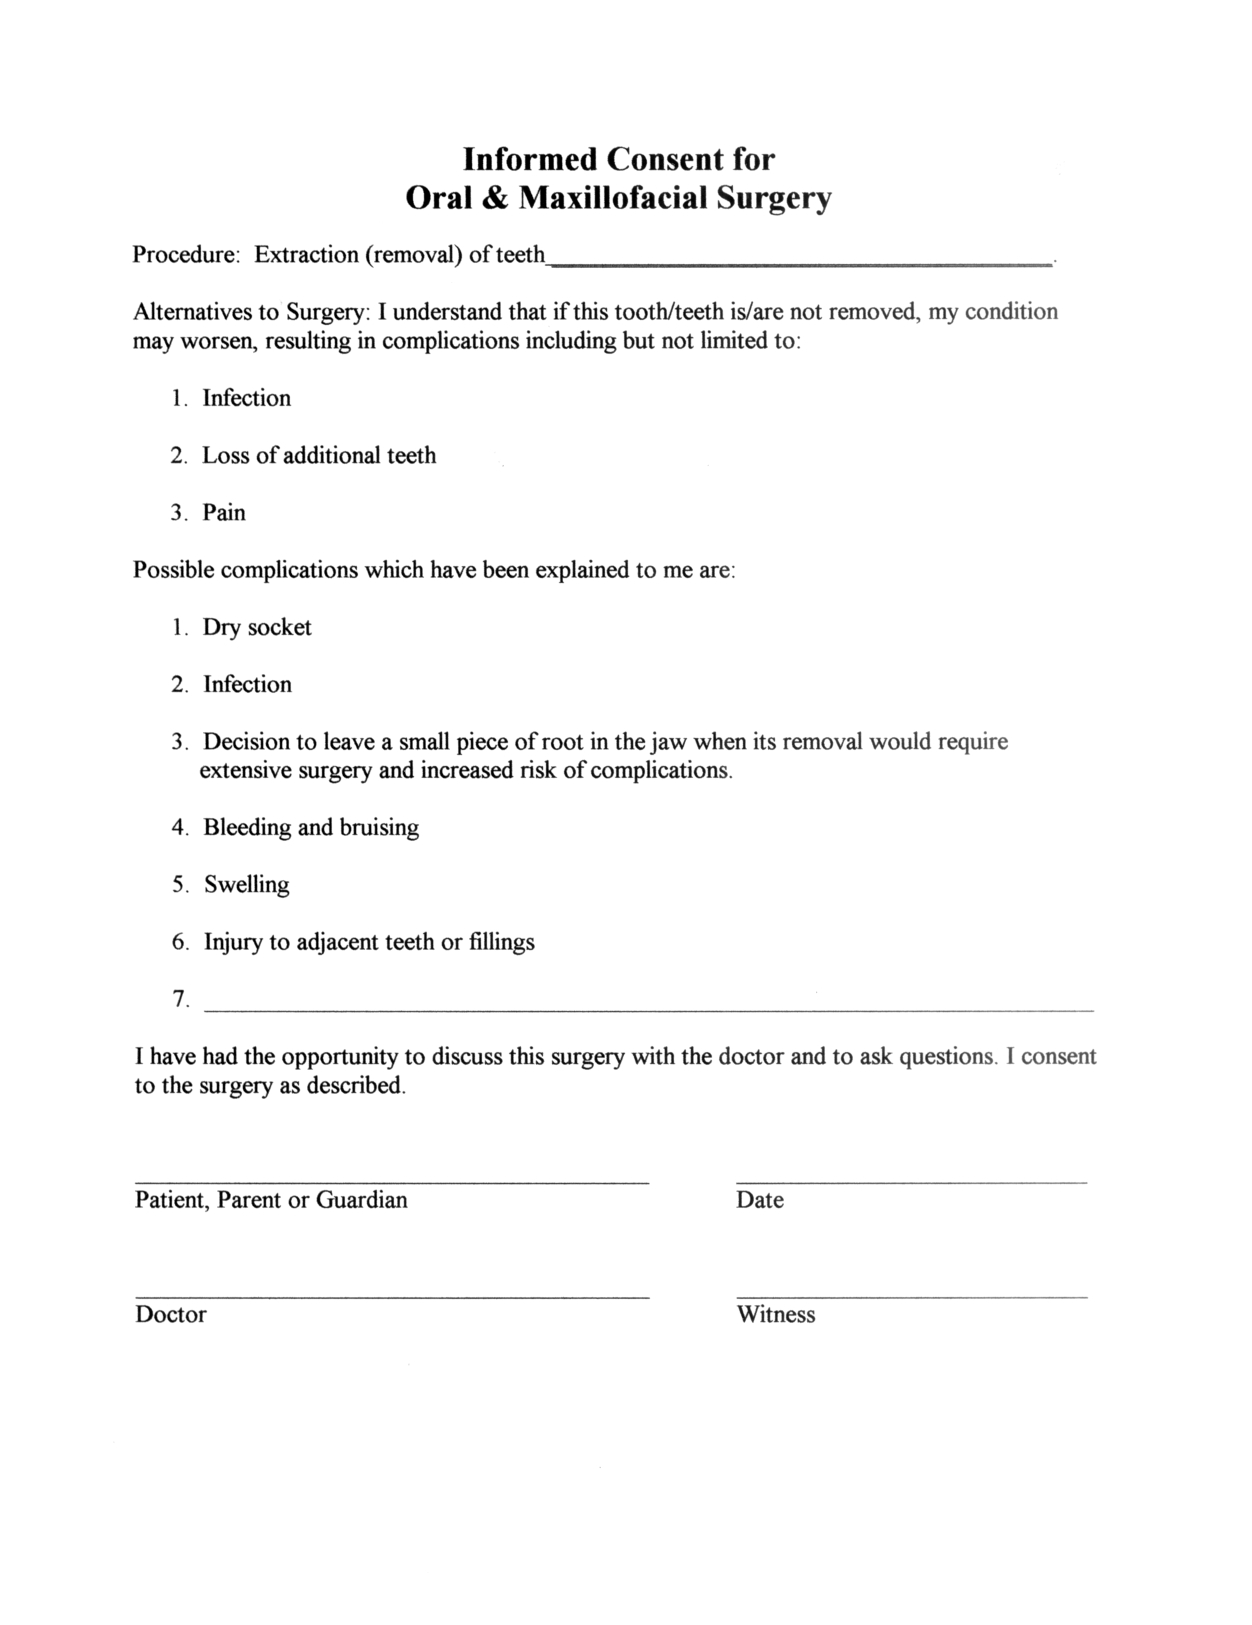 medical consent letter template example-Surgery Informed Consent Form Template 14-p